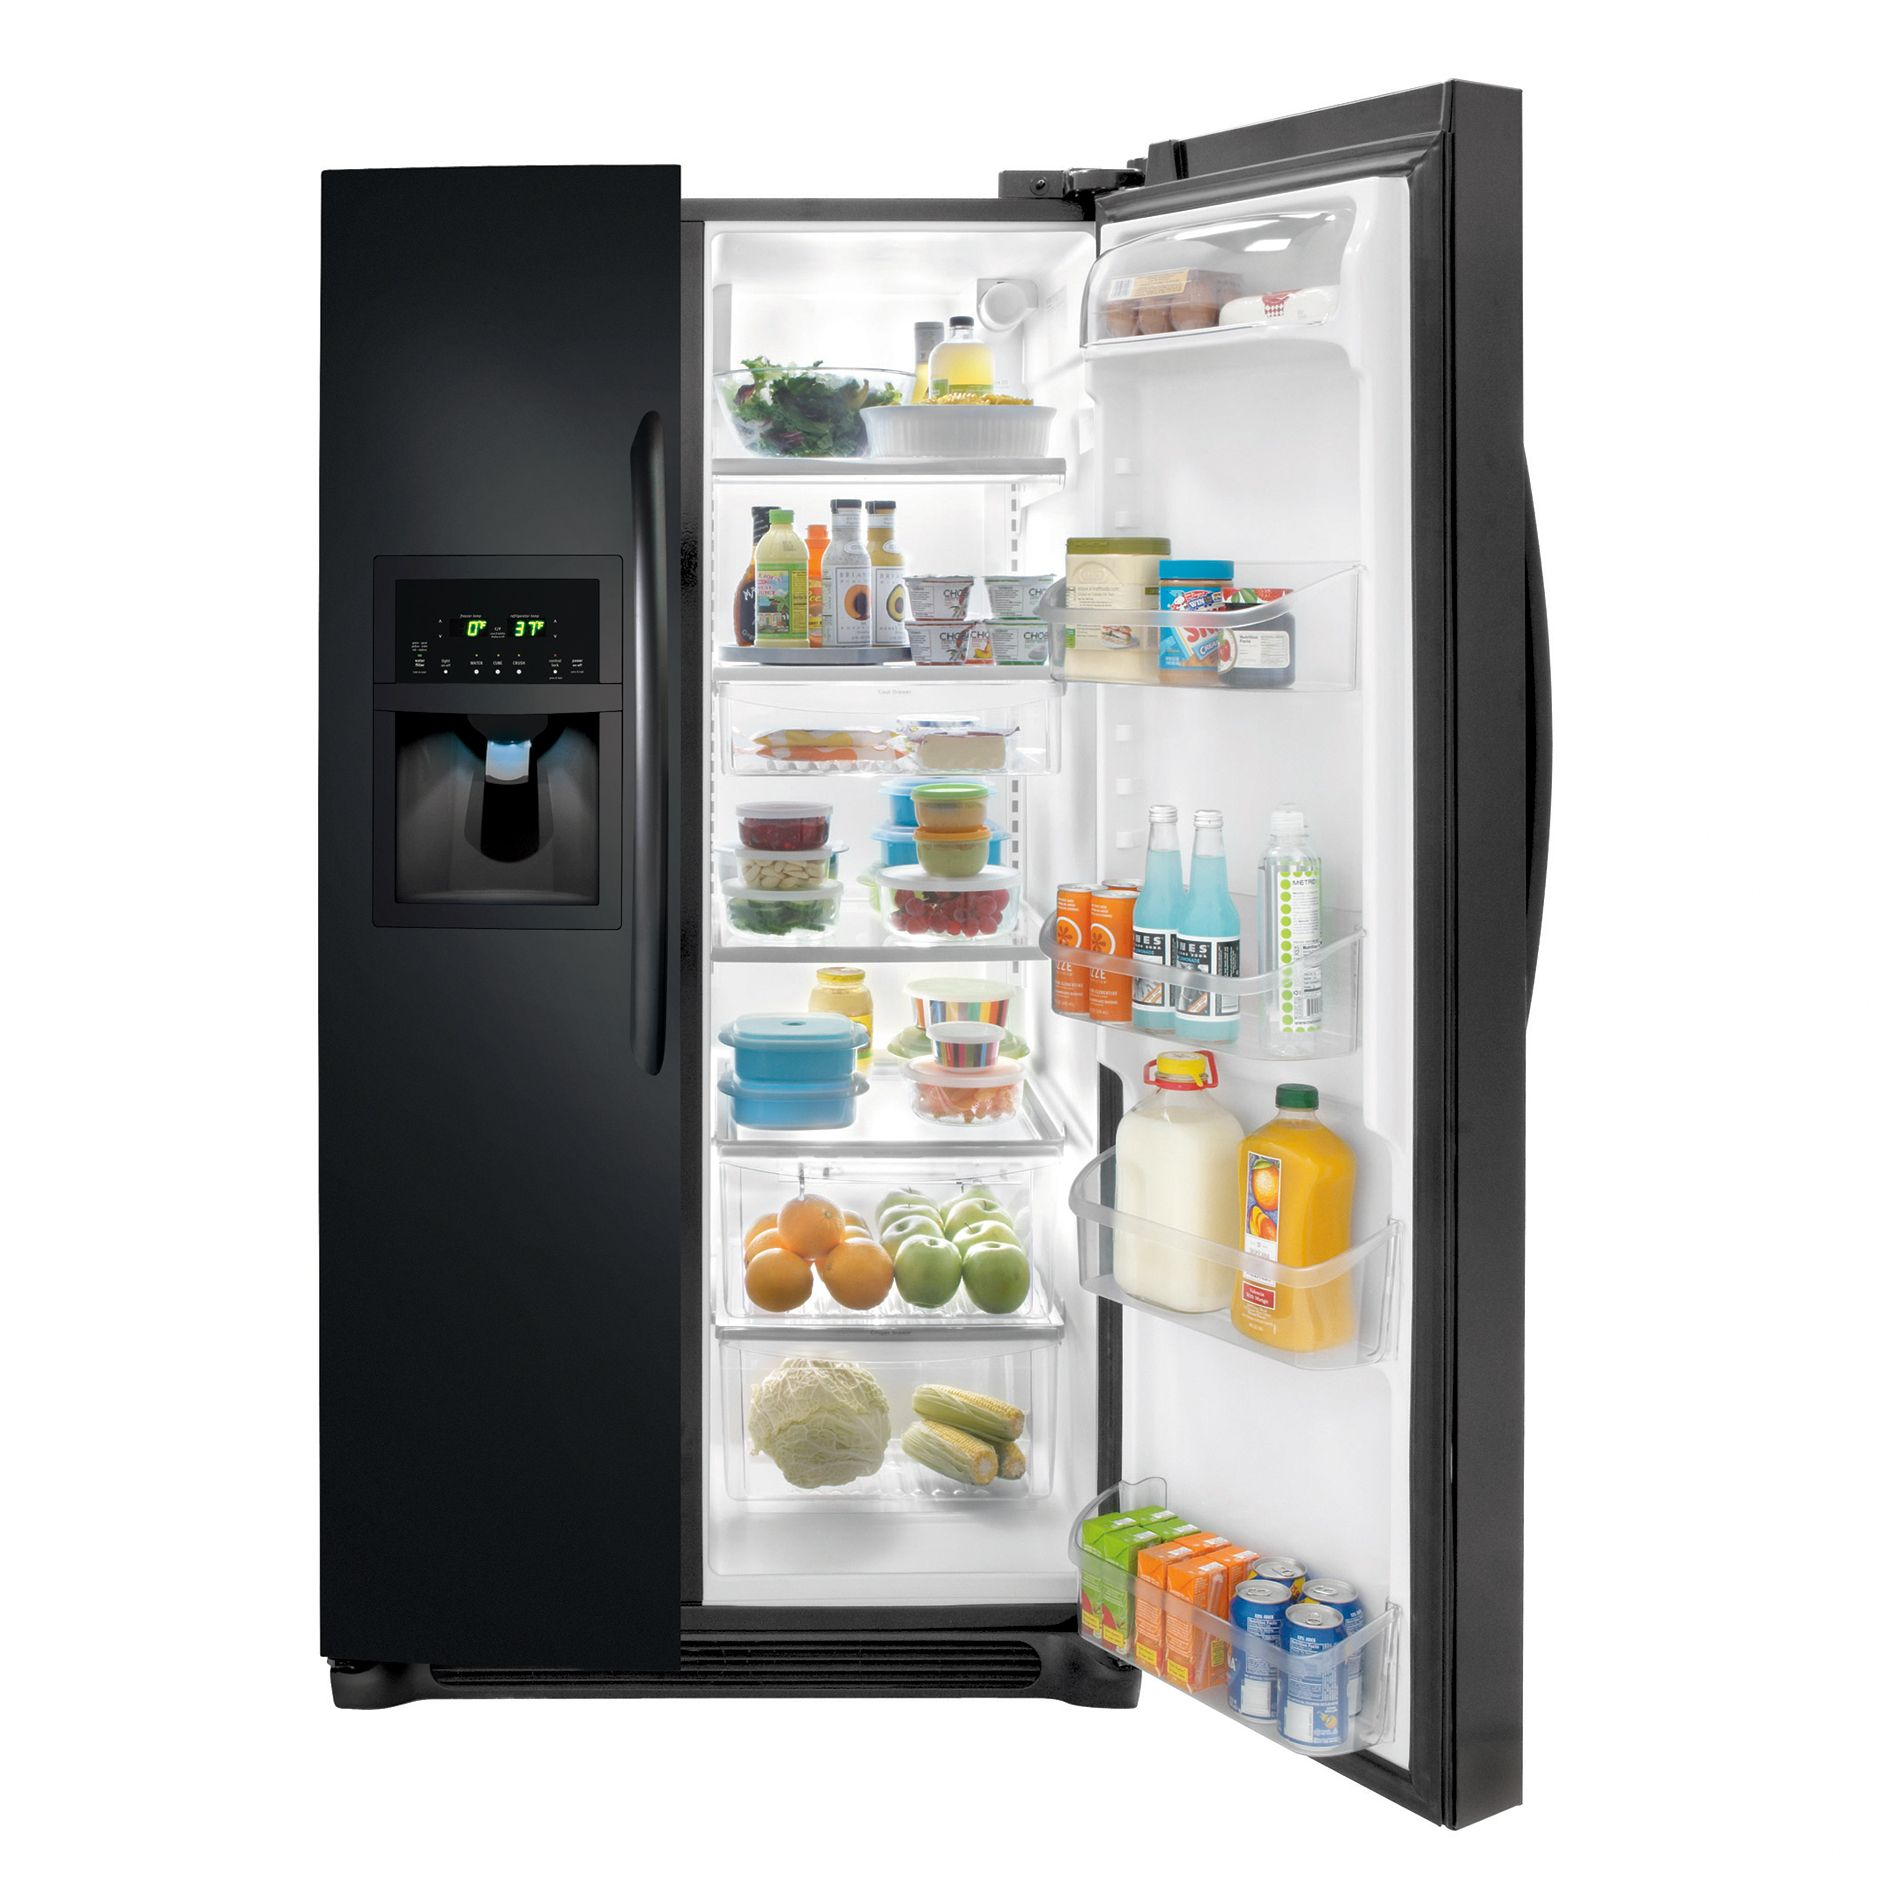 Frigidaire Gallery 22.6 cu. ft. Side-by-Side Refrigerator